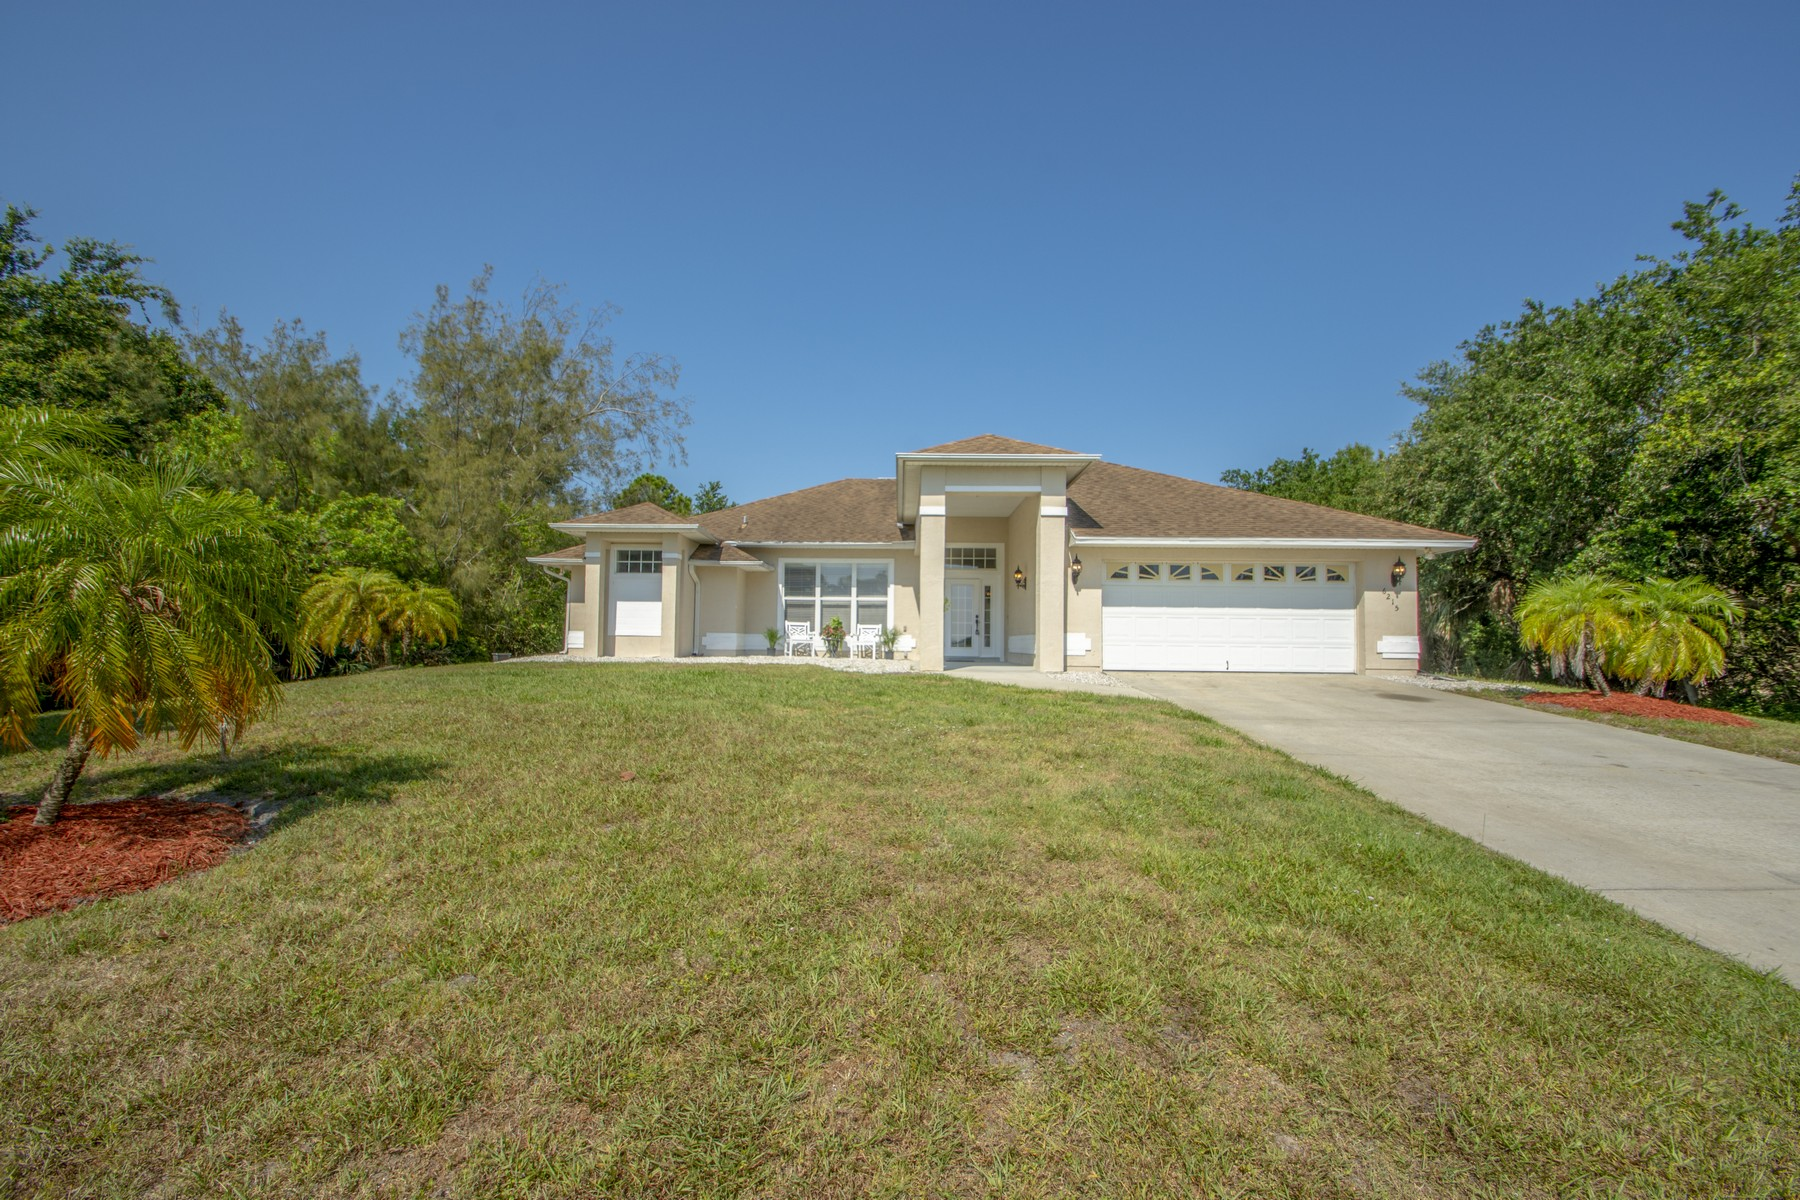 Single Family Homes for Sale at River Views From This Home on Tranqual Enclave 6215 109th Street Sebastian, Florida 32958 United States